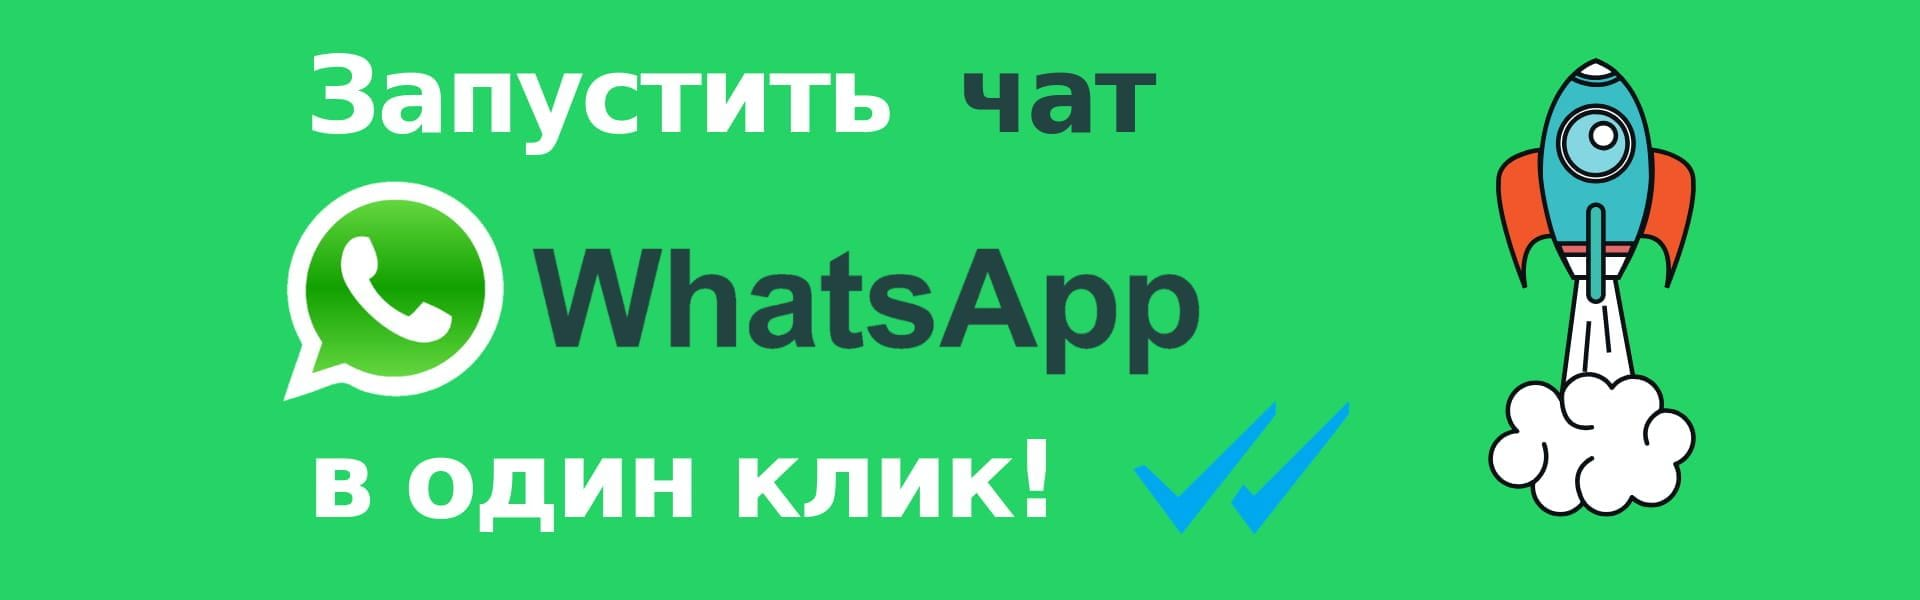 Чат Whatsapp